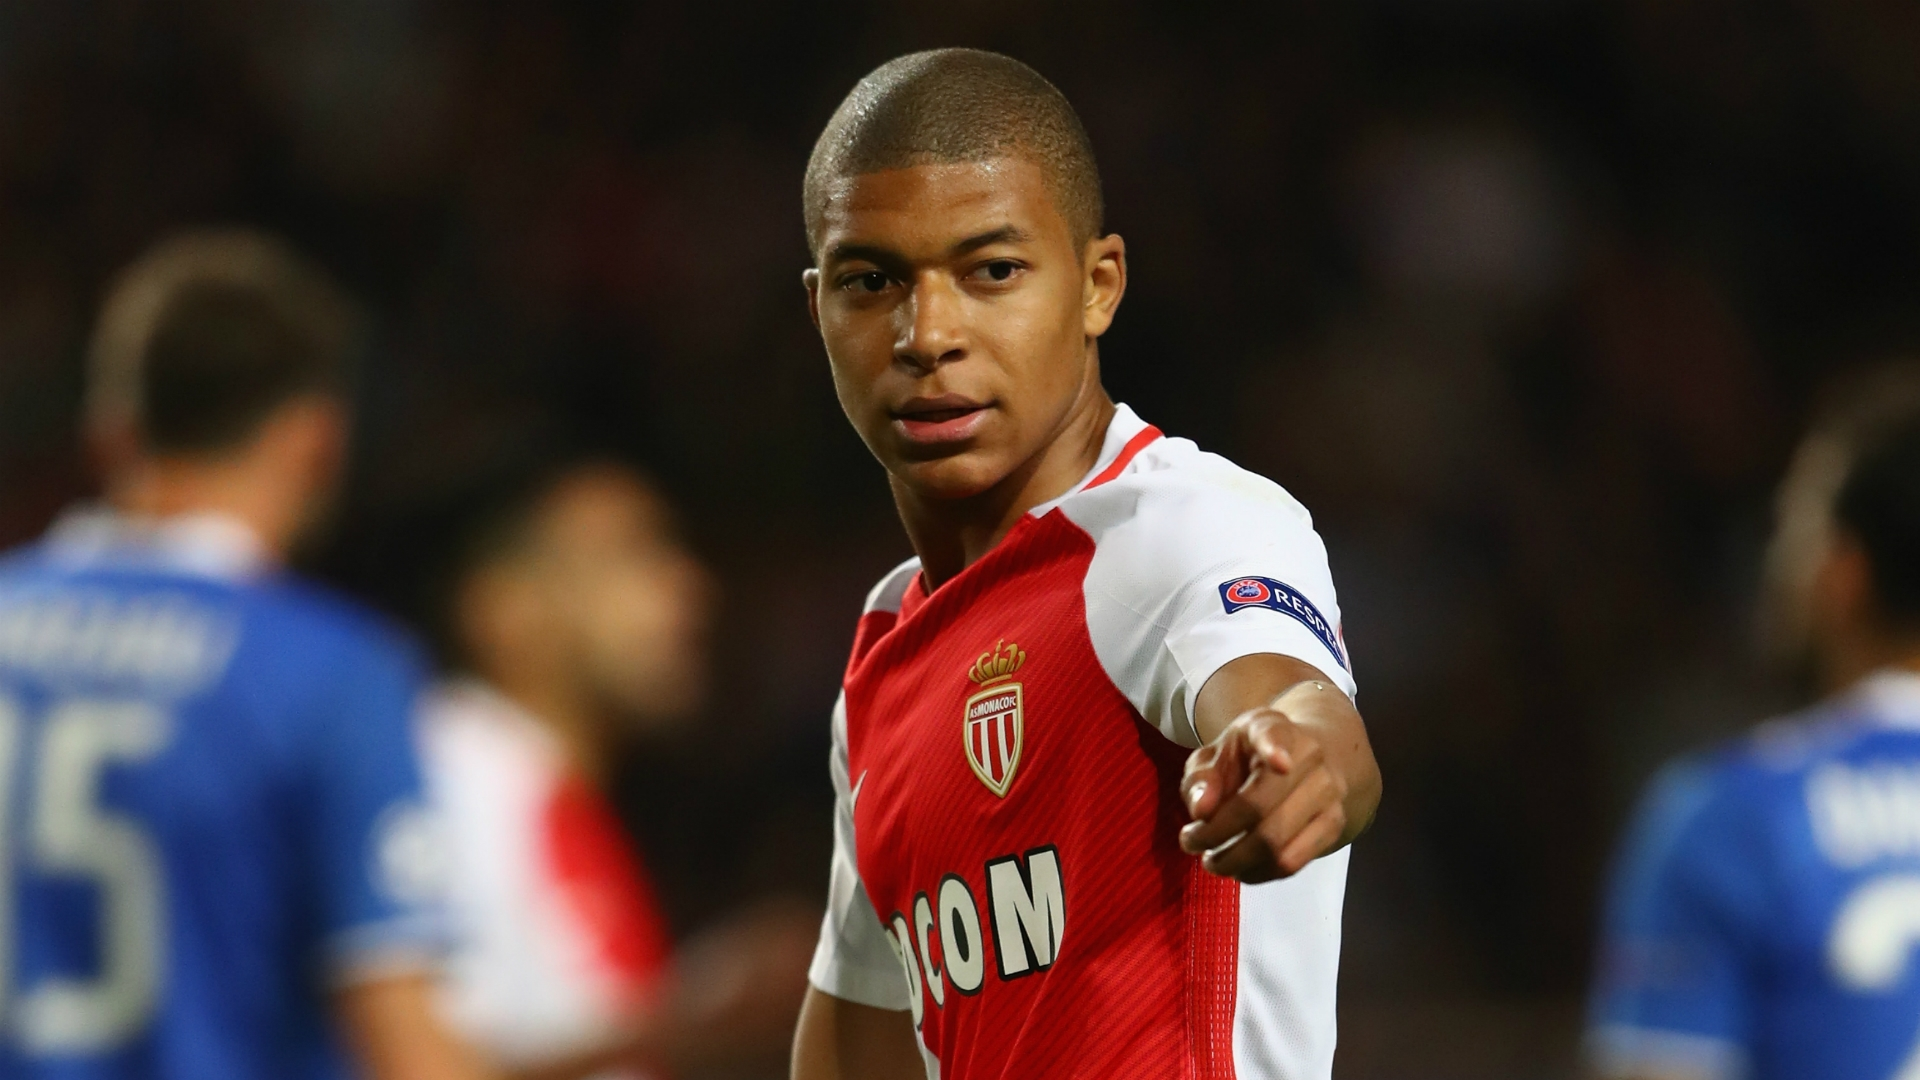 Mbappe revealed he is sorting through transfer offers and will soon make his choice.